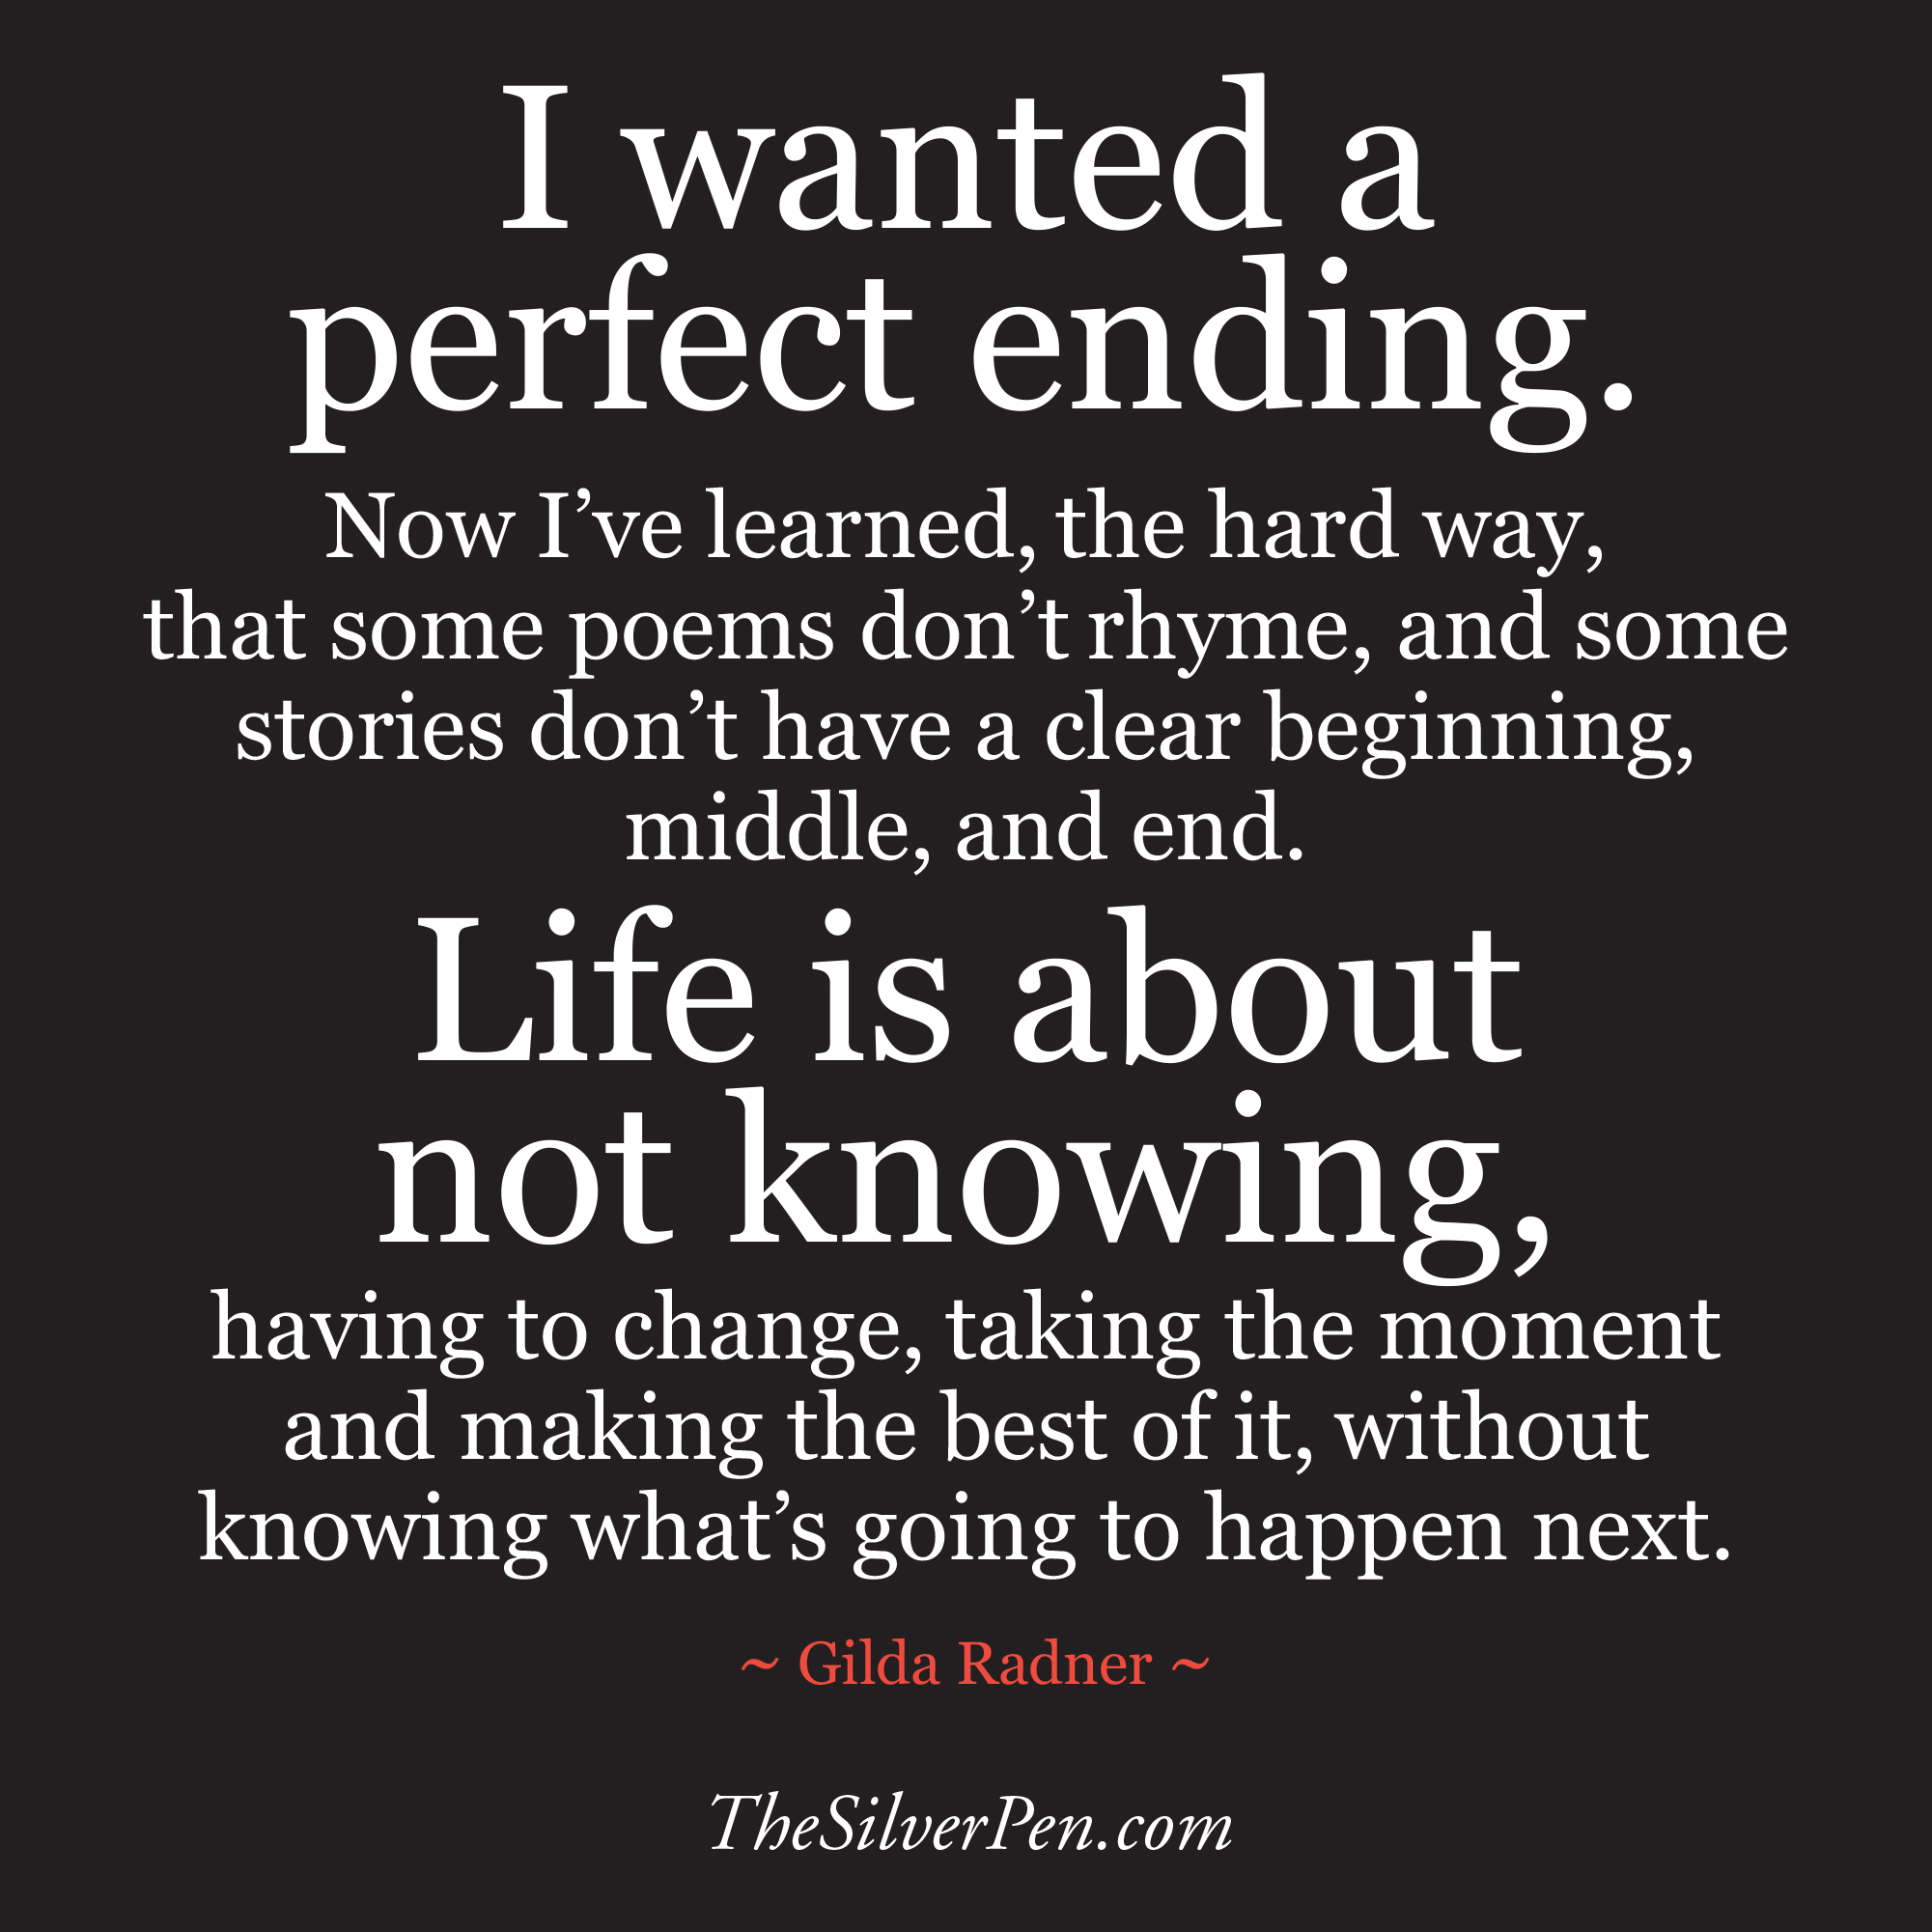 End Quotes 62 Top Quotes And Sayings About Ending